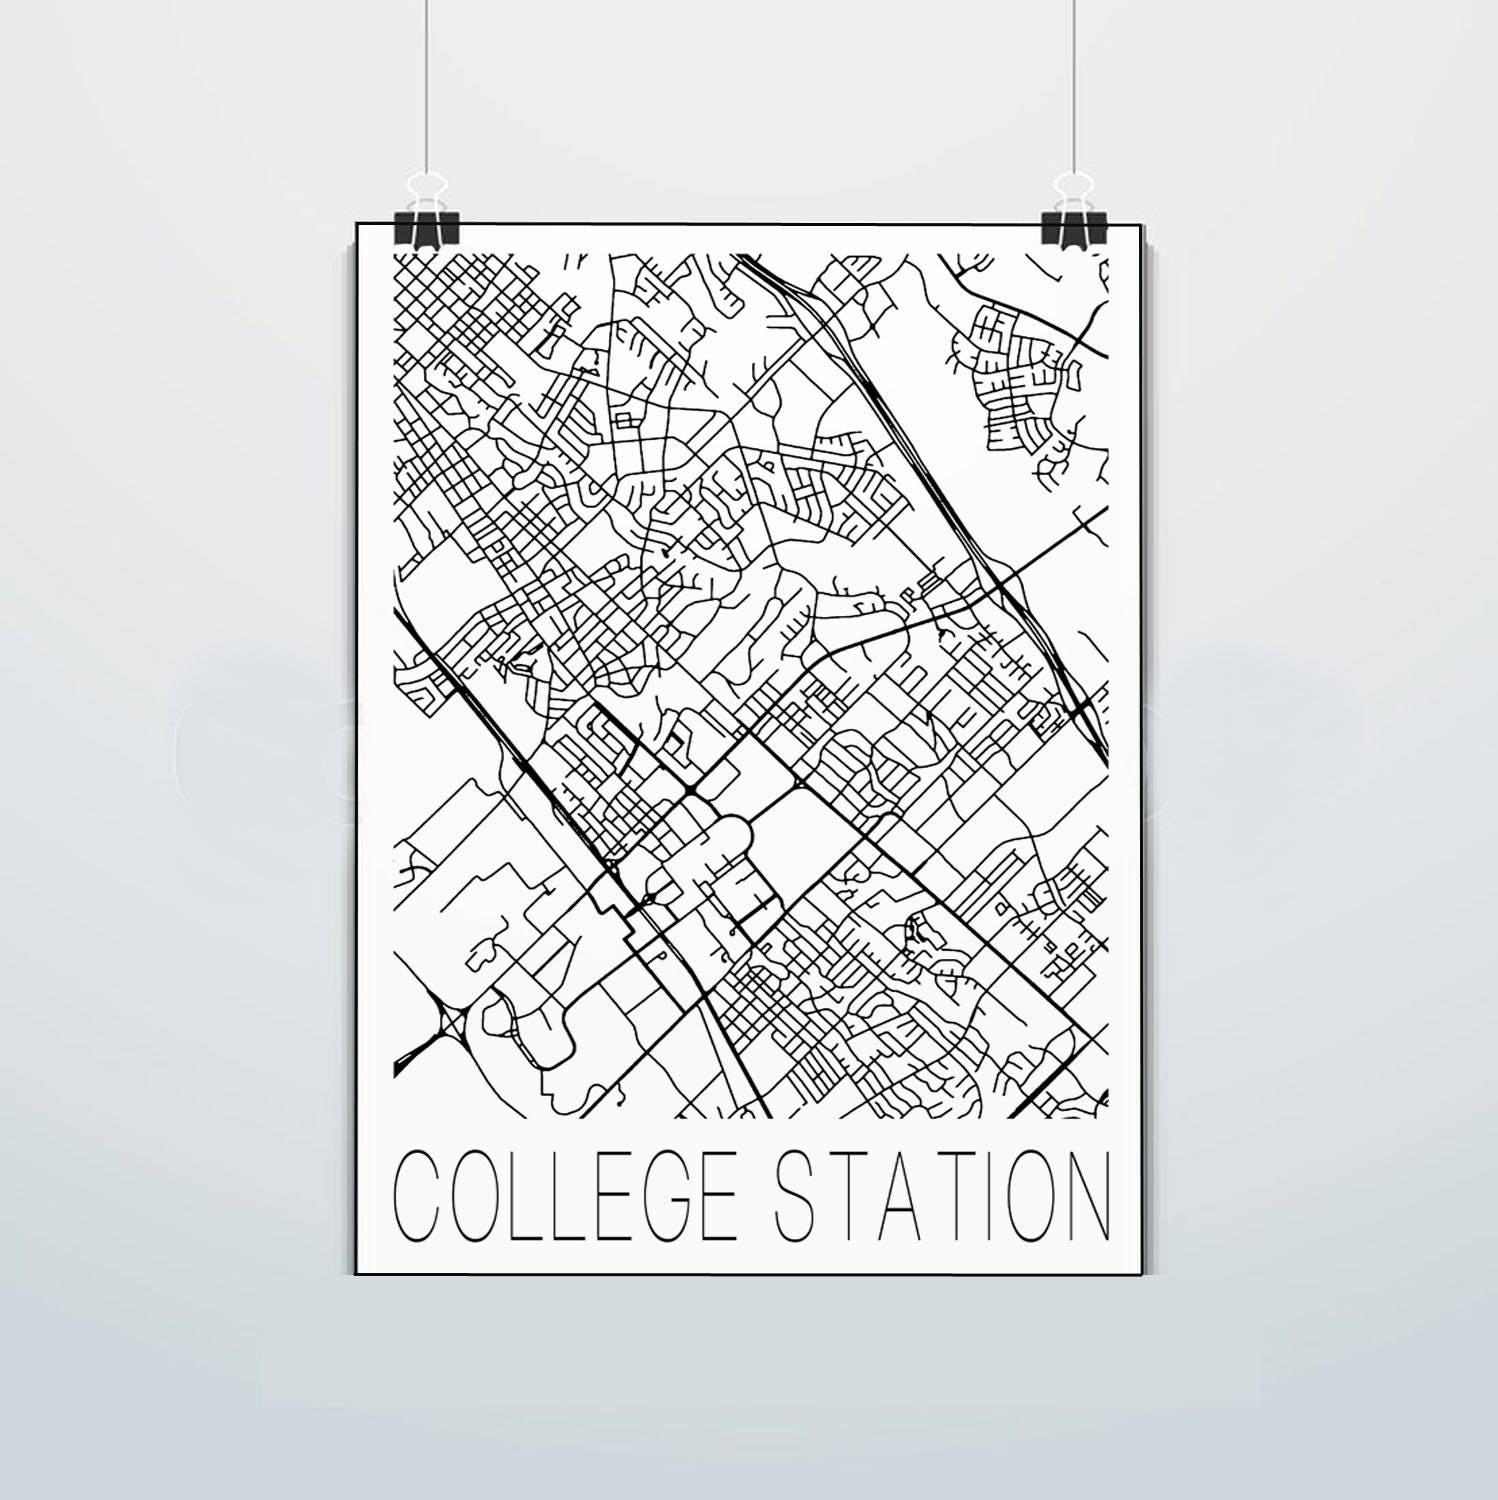 College Station - Texas - Map - Aggies - P Texas A&M - Print - Poster on jonesboro texas map, chattanooga texas map, rice university texas map, bryan texas map, cisco texas map, tyler texas map, new braunsfels texas map, auburn texas map, gonzales texas map, texas a&m university campus map, livingston texas map, lufkin texas map, all universities texas' map, texas state university texas map, austin texas map, fort worth texas map, seattle texas map, fort smith texas map, lubbock texas map, california texas map,